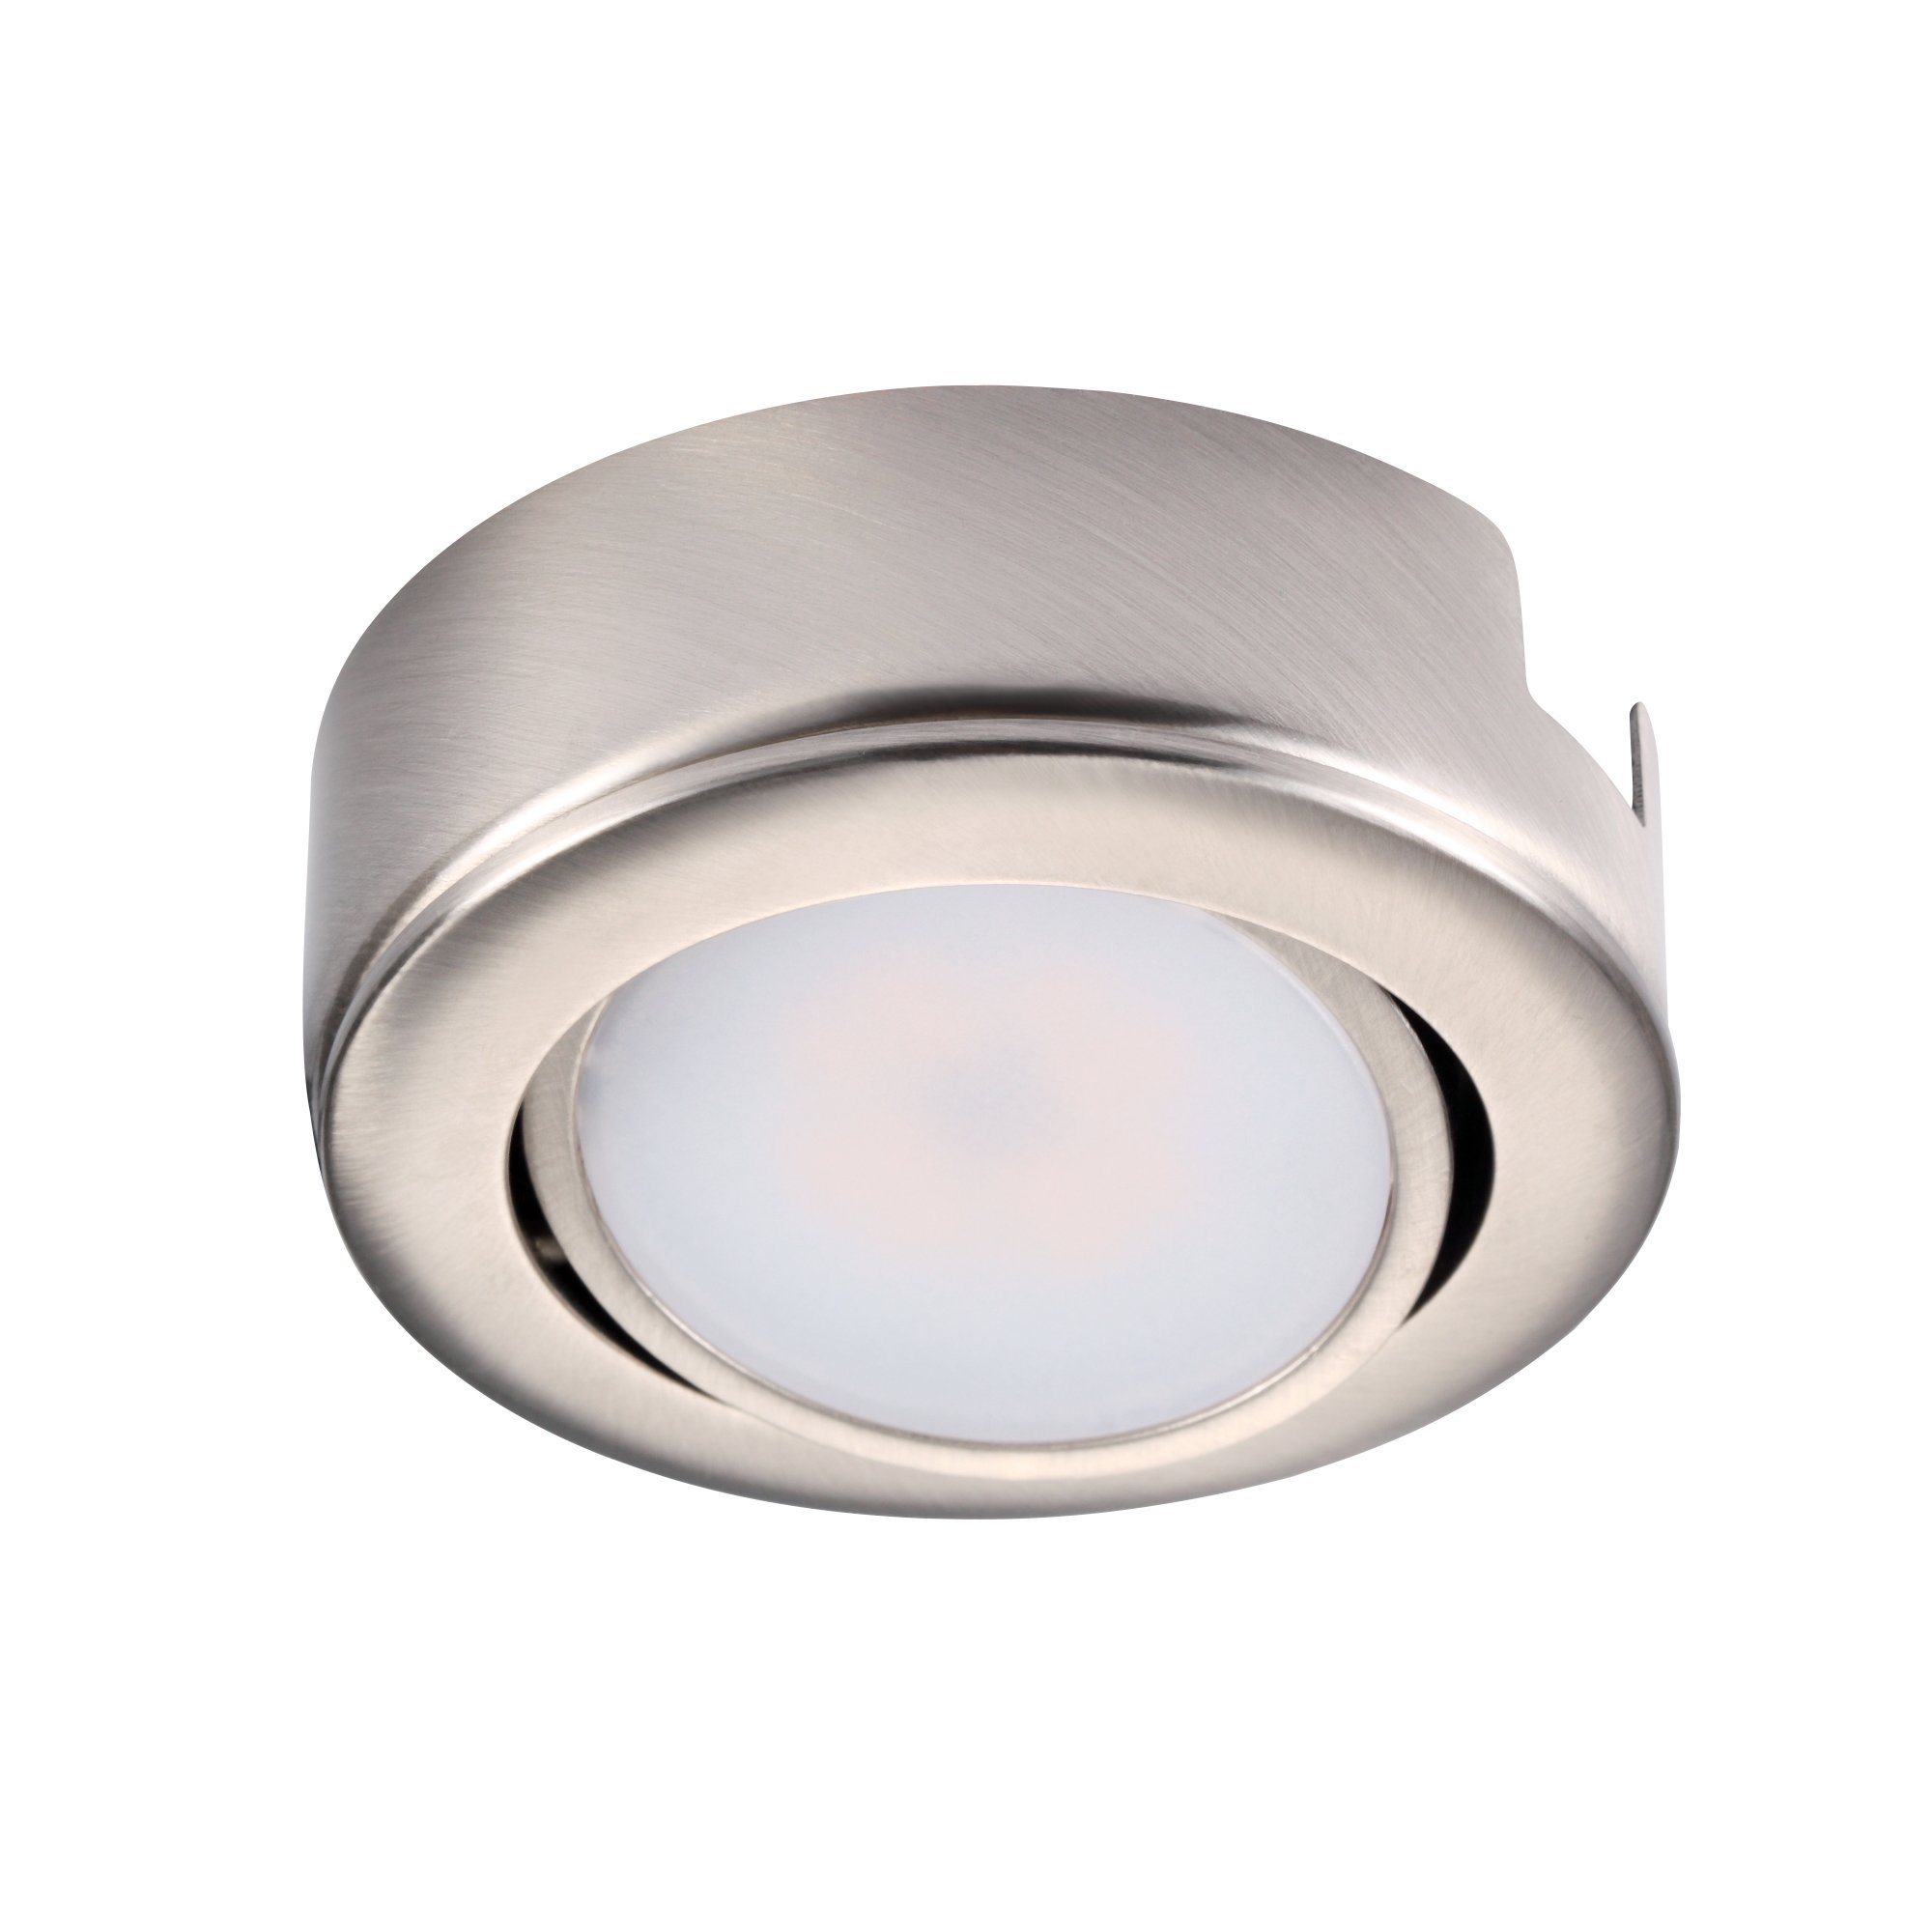 GetInLight Dimmable and Swivel, LED Puck Light Kit with ETL List, Recessed or Surface Mount Design, Bright White 4000K, Brush Nickel Finished, Power Cord Included, IN-0107-1S-SN-40